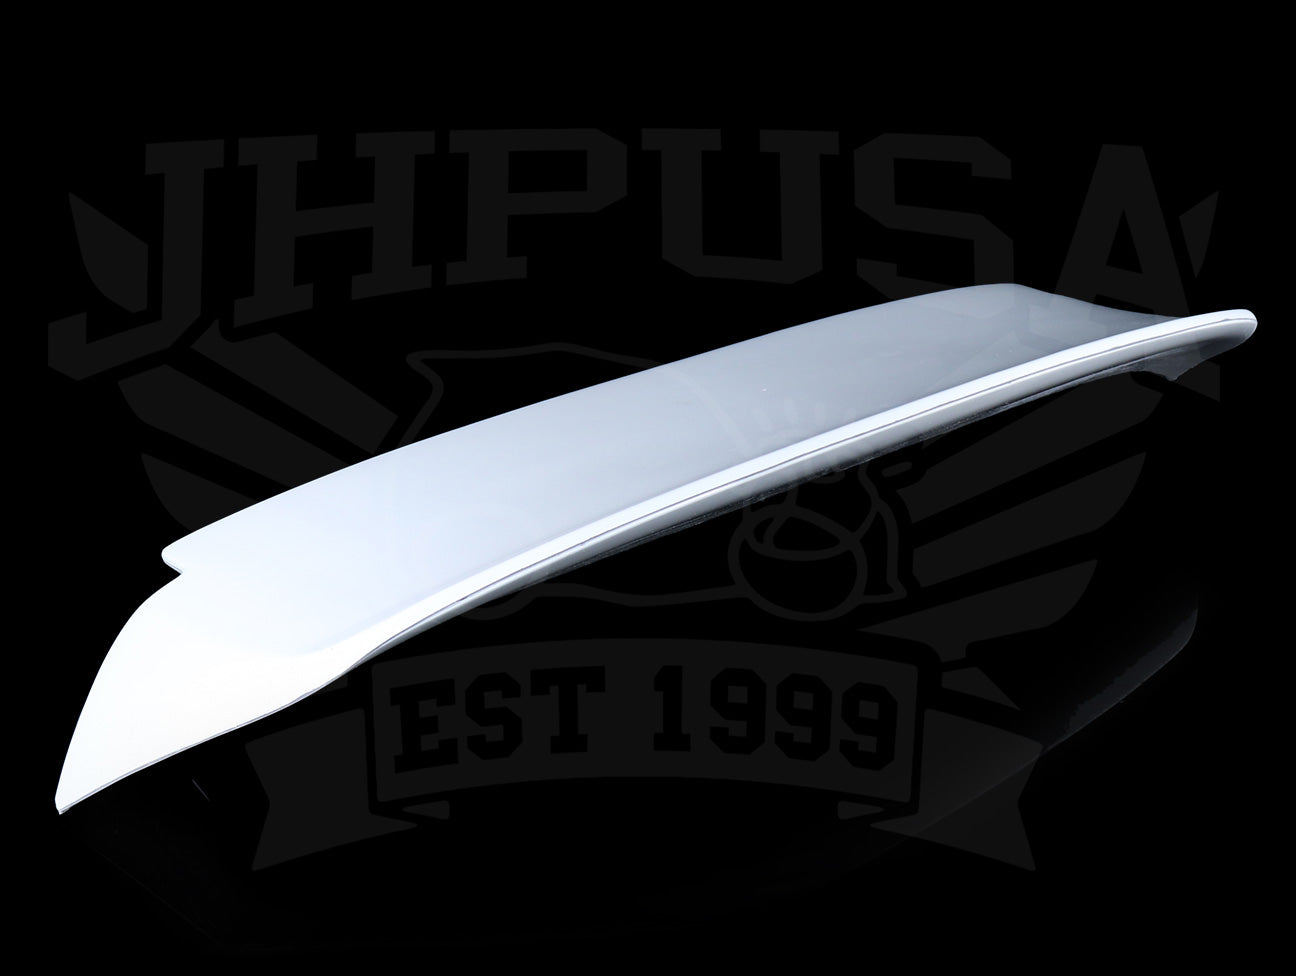 Osaka Jdm Frp Rear Devil Wing 92 95 Civic Hatchback Jhpusa 1992 Honda Spoiler